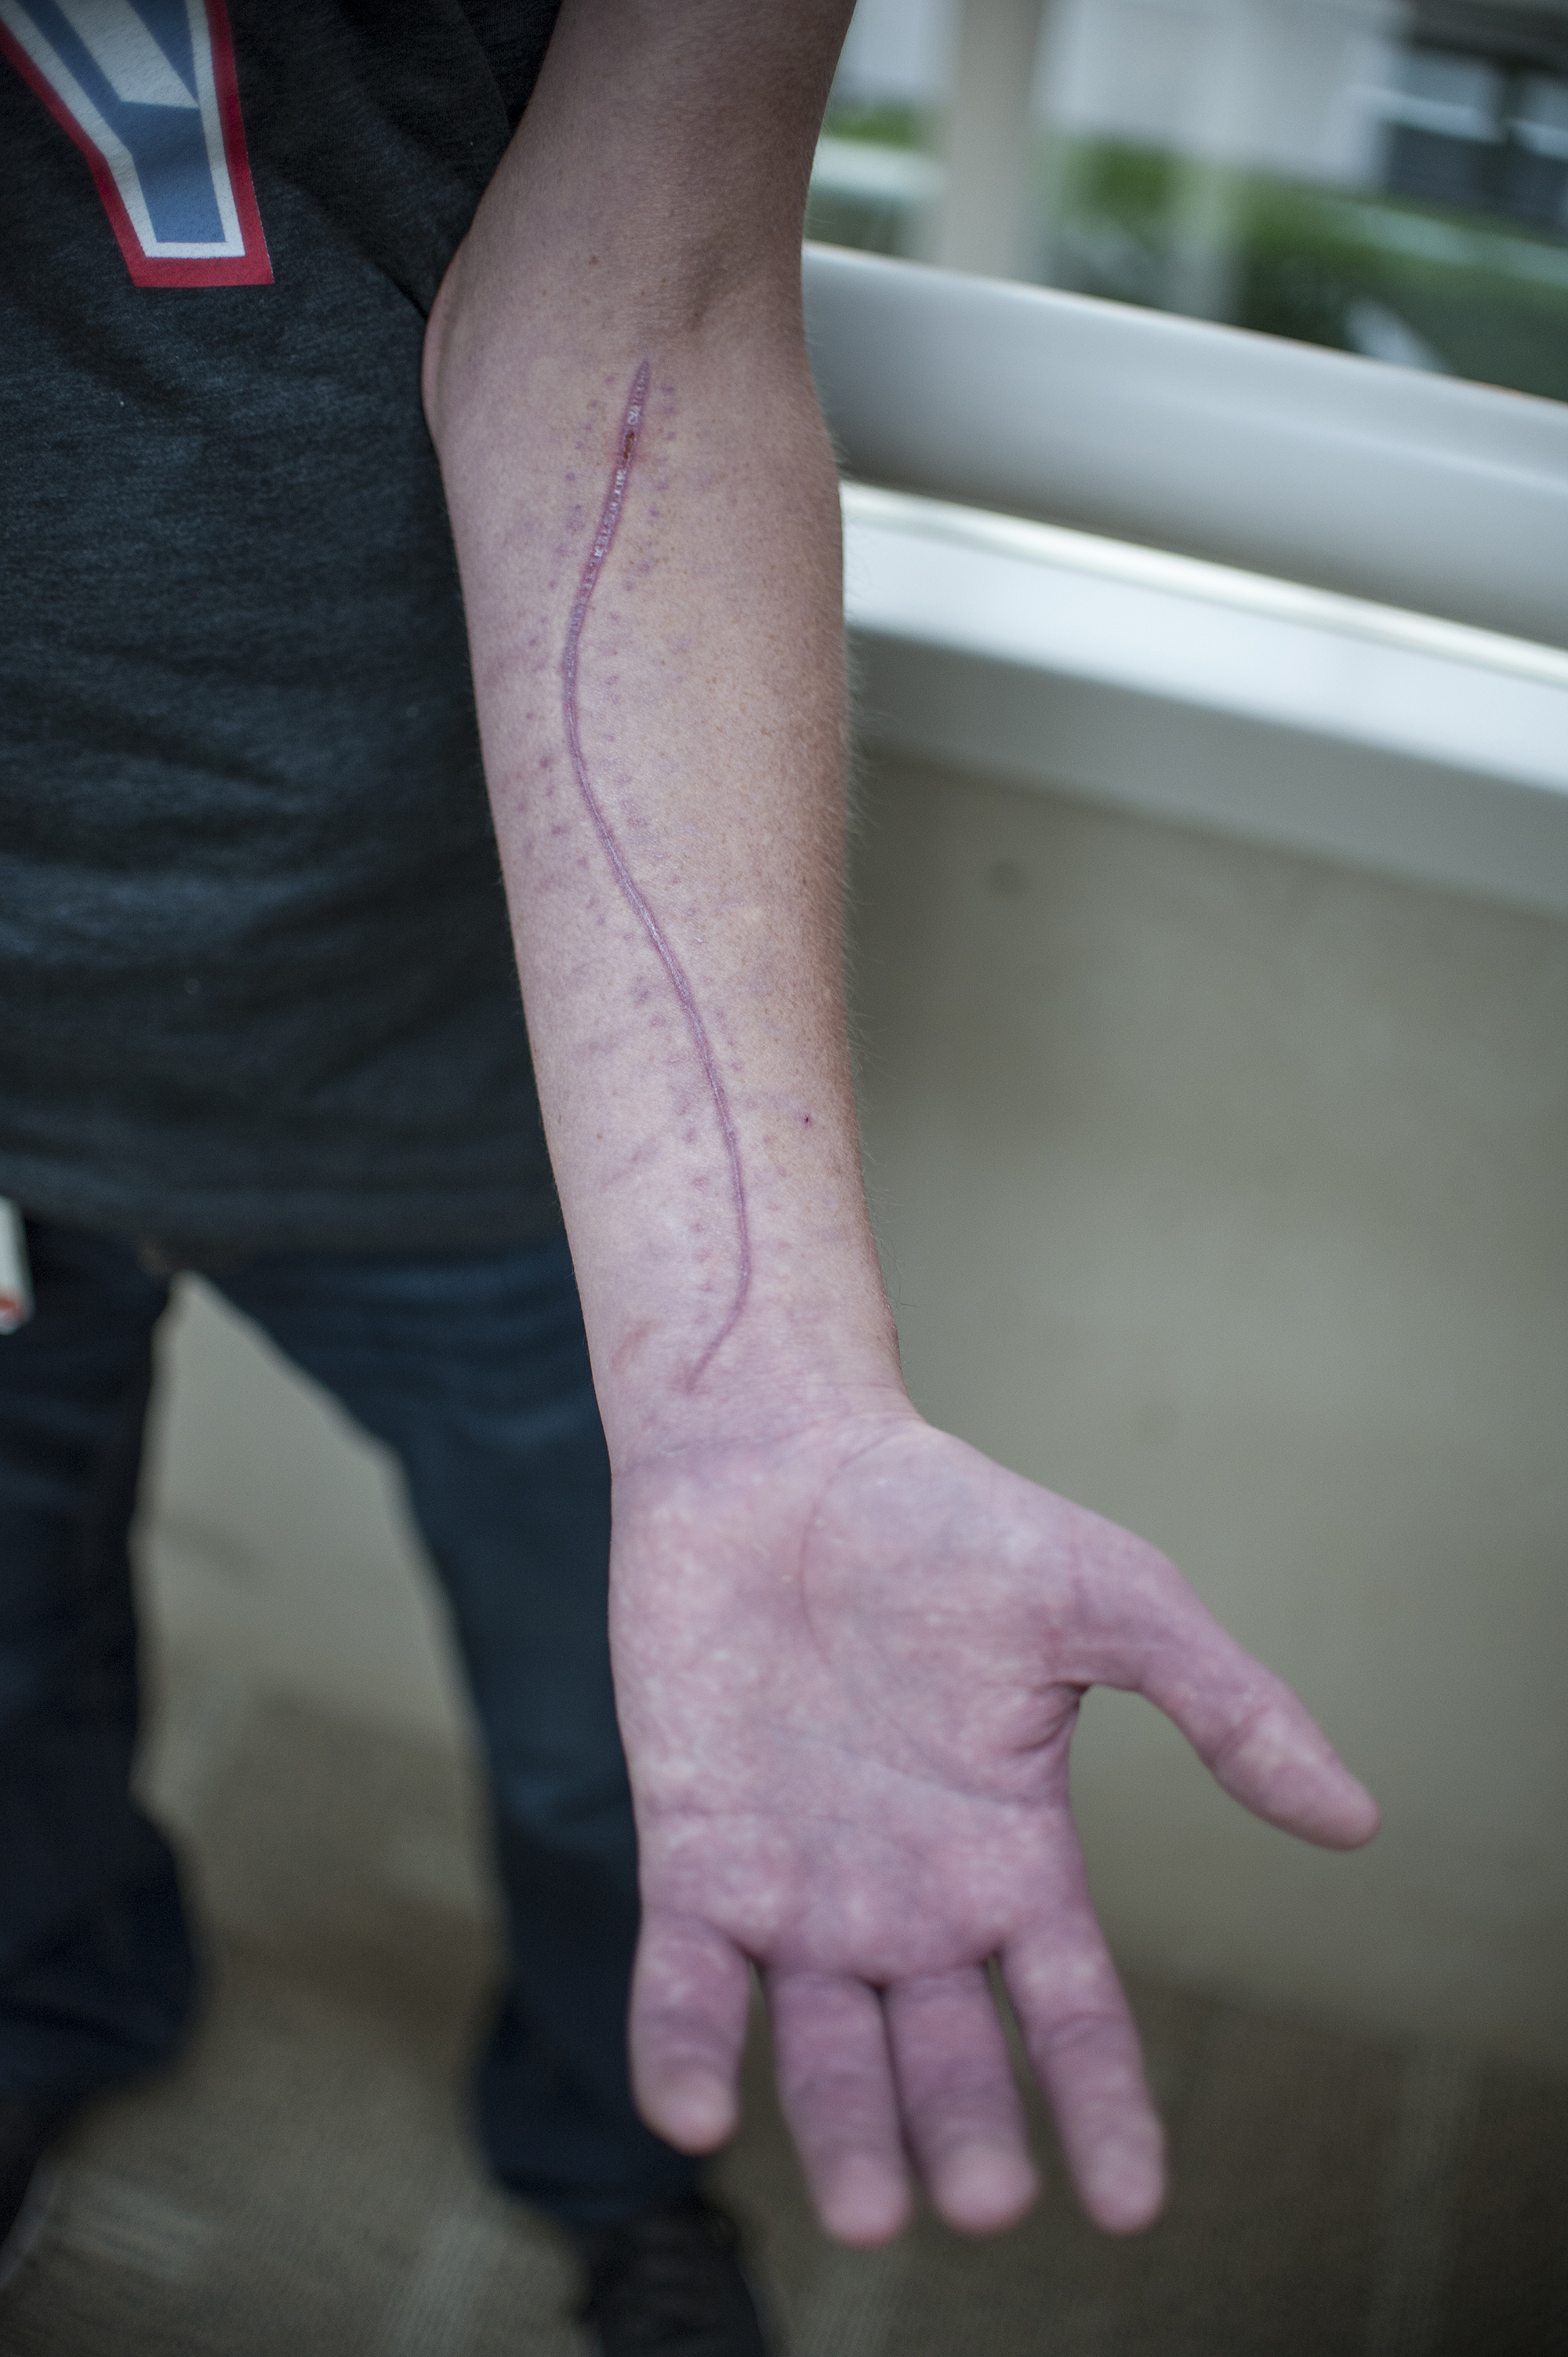 Atkins showing scar on arm